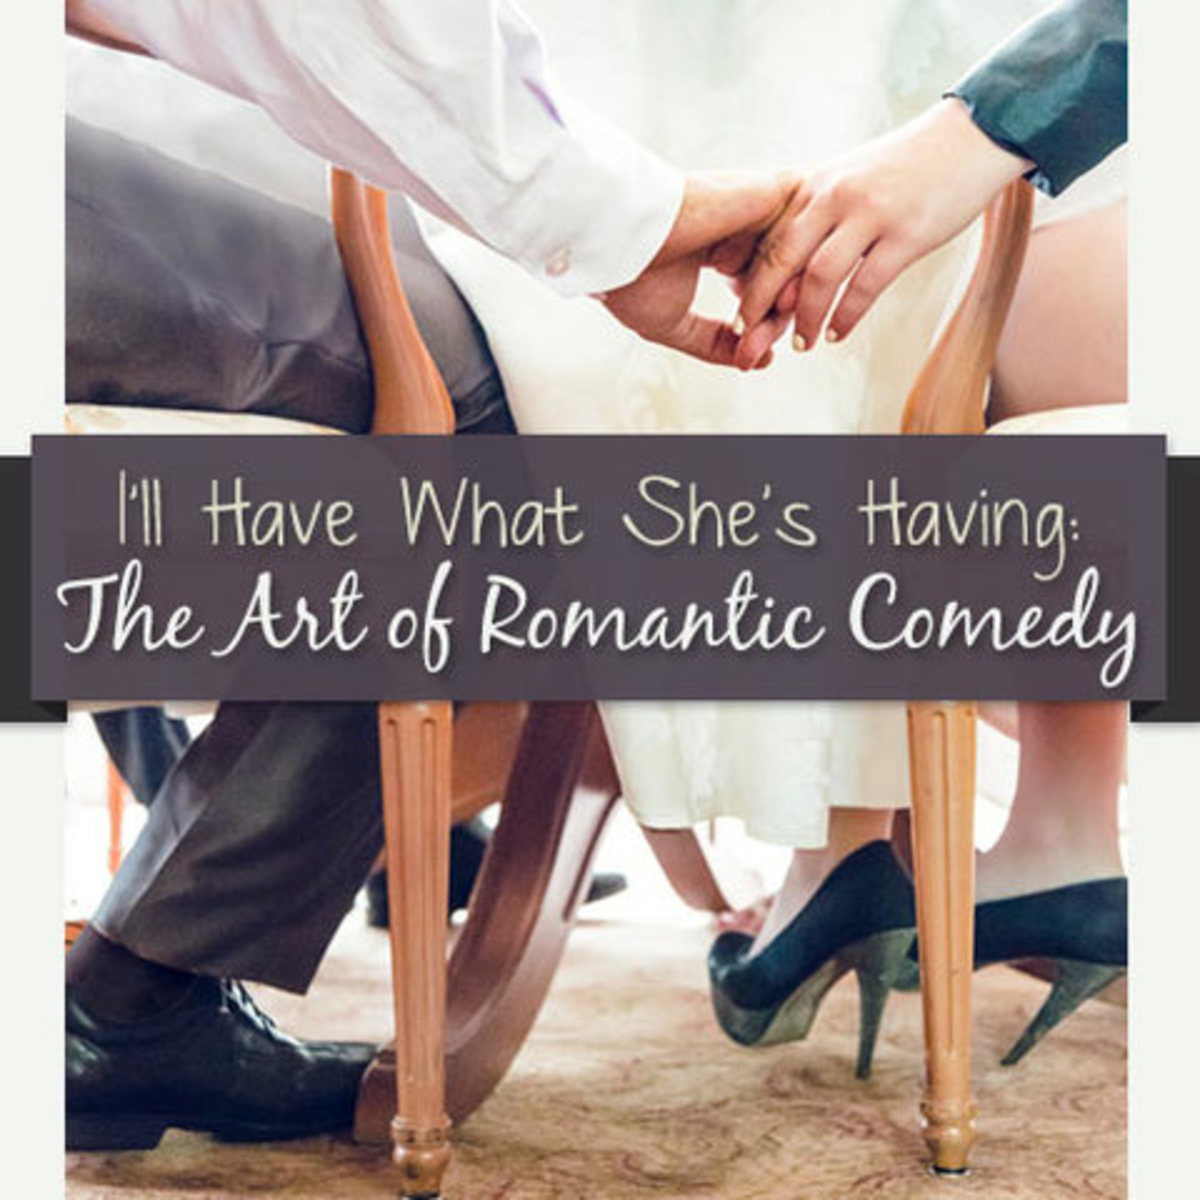 """I'll Have What She's Having"": The Art of Romantic Comedy"